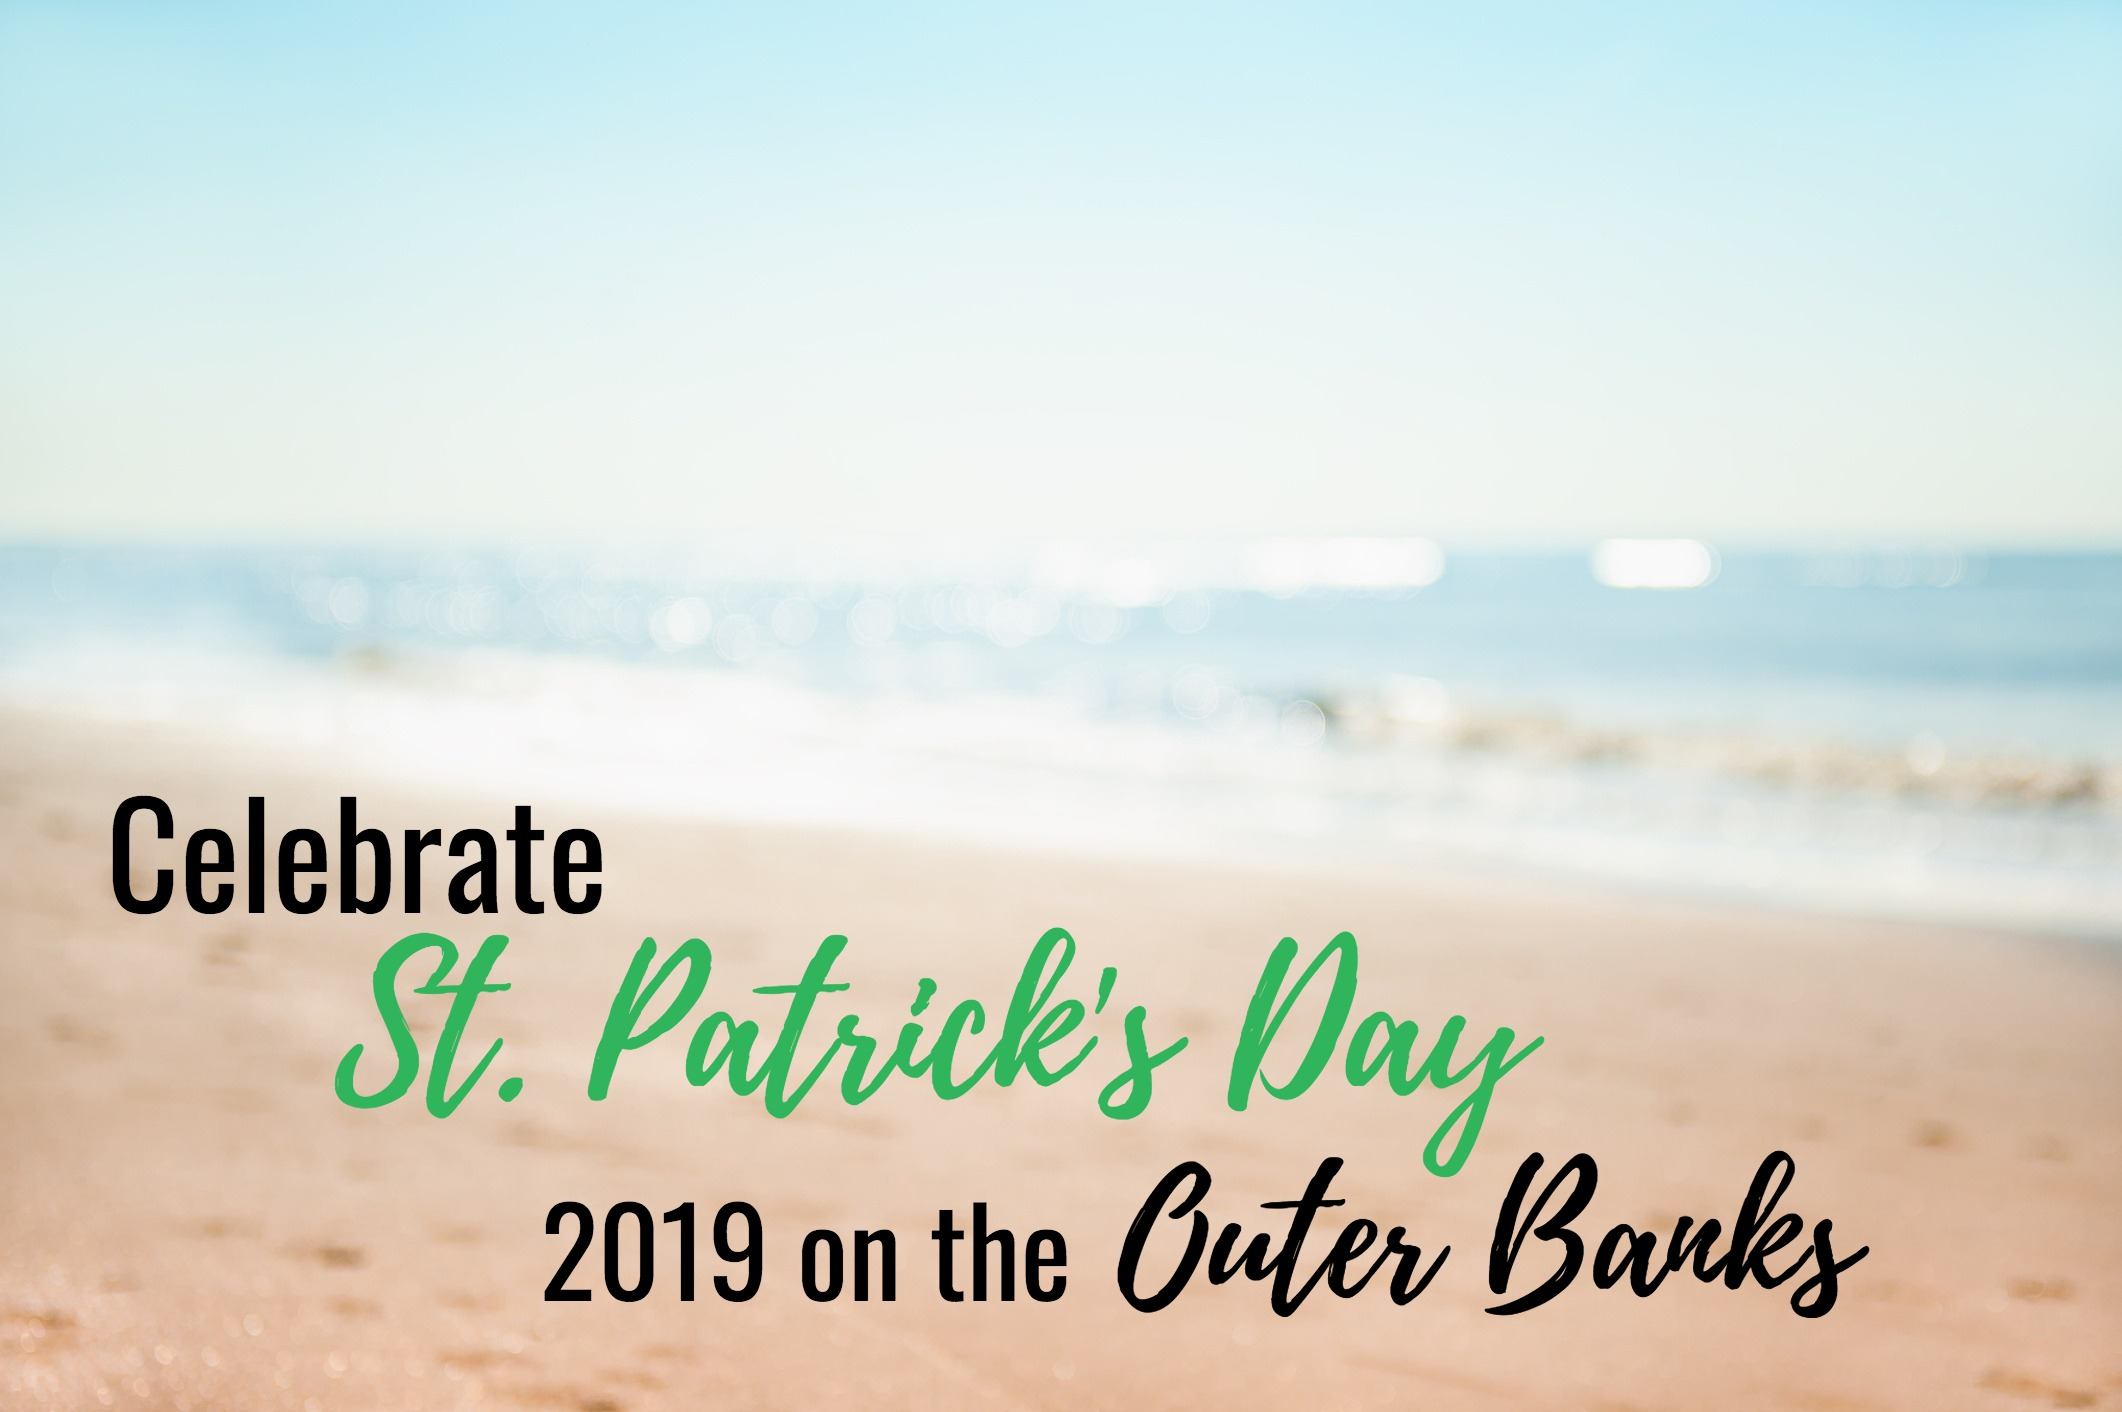 Celebrate St. Patrick's Day 2019 on the Outer Banks